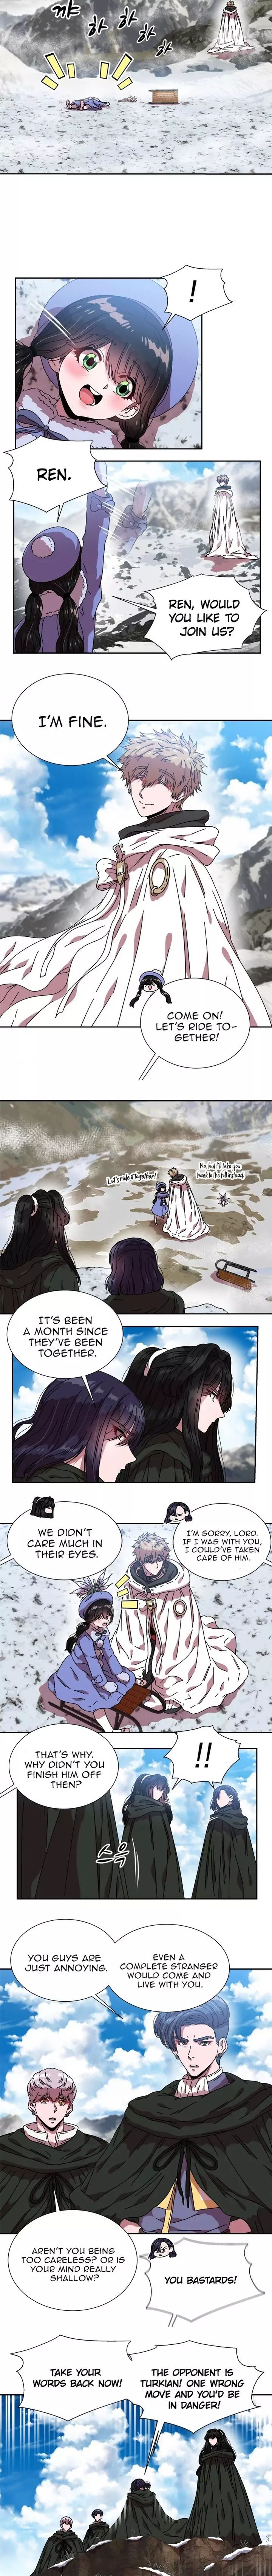 i_was_born_as_the_demon_lords_daughter_29_8